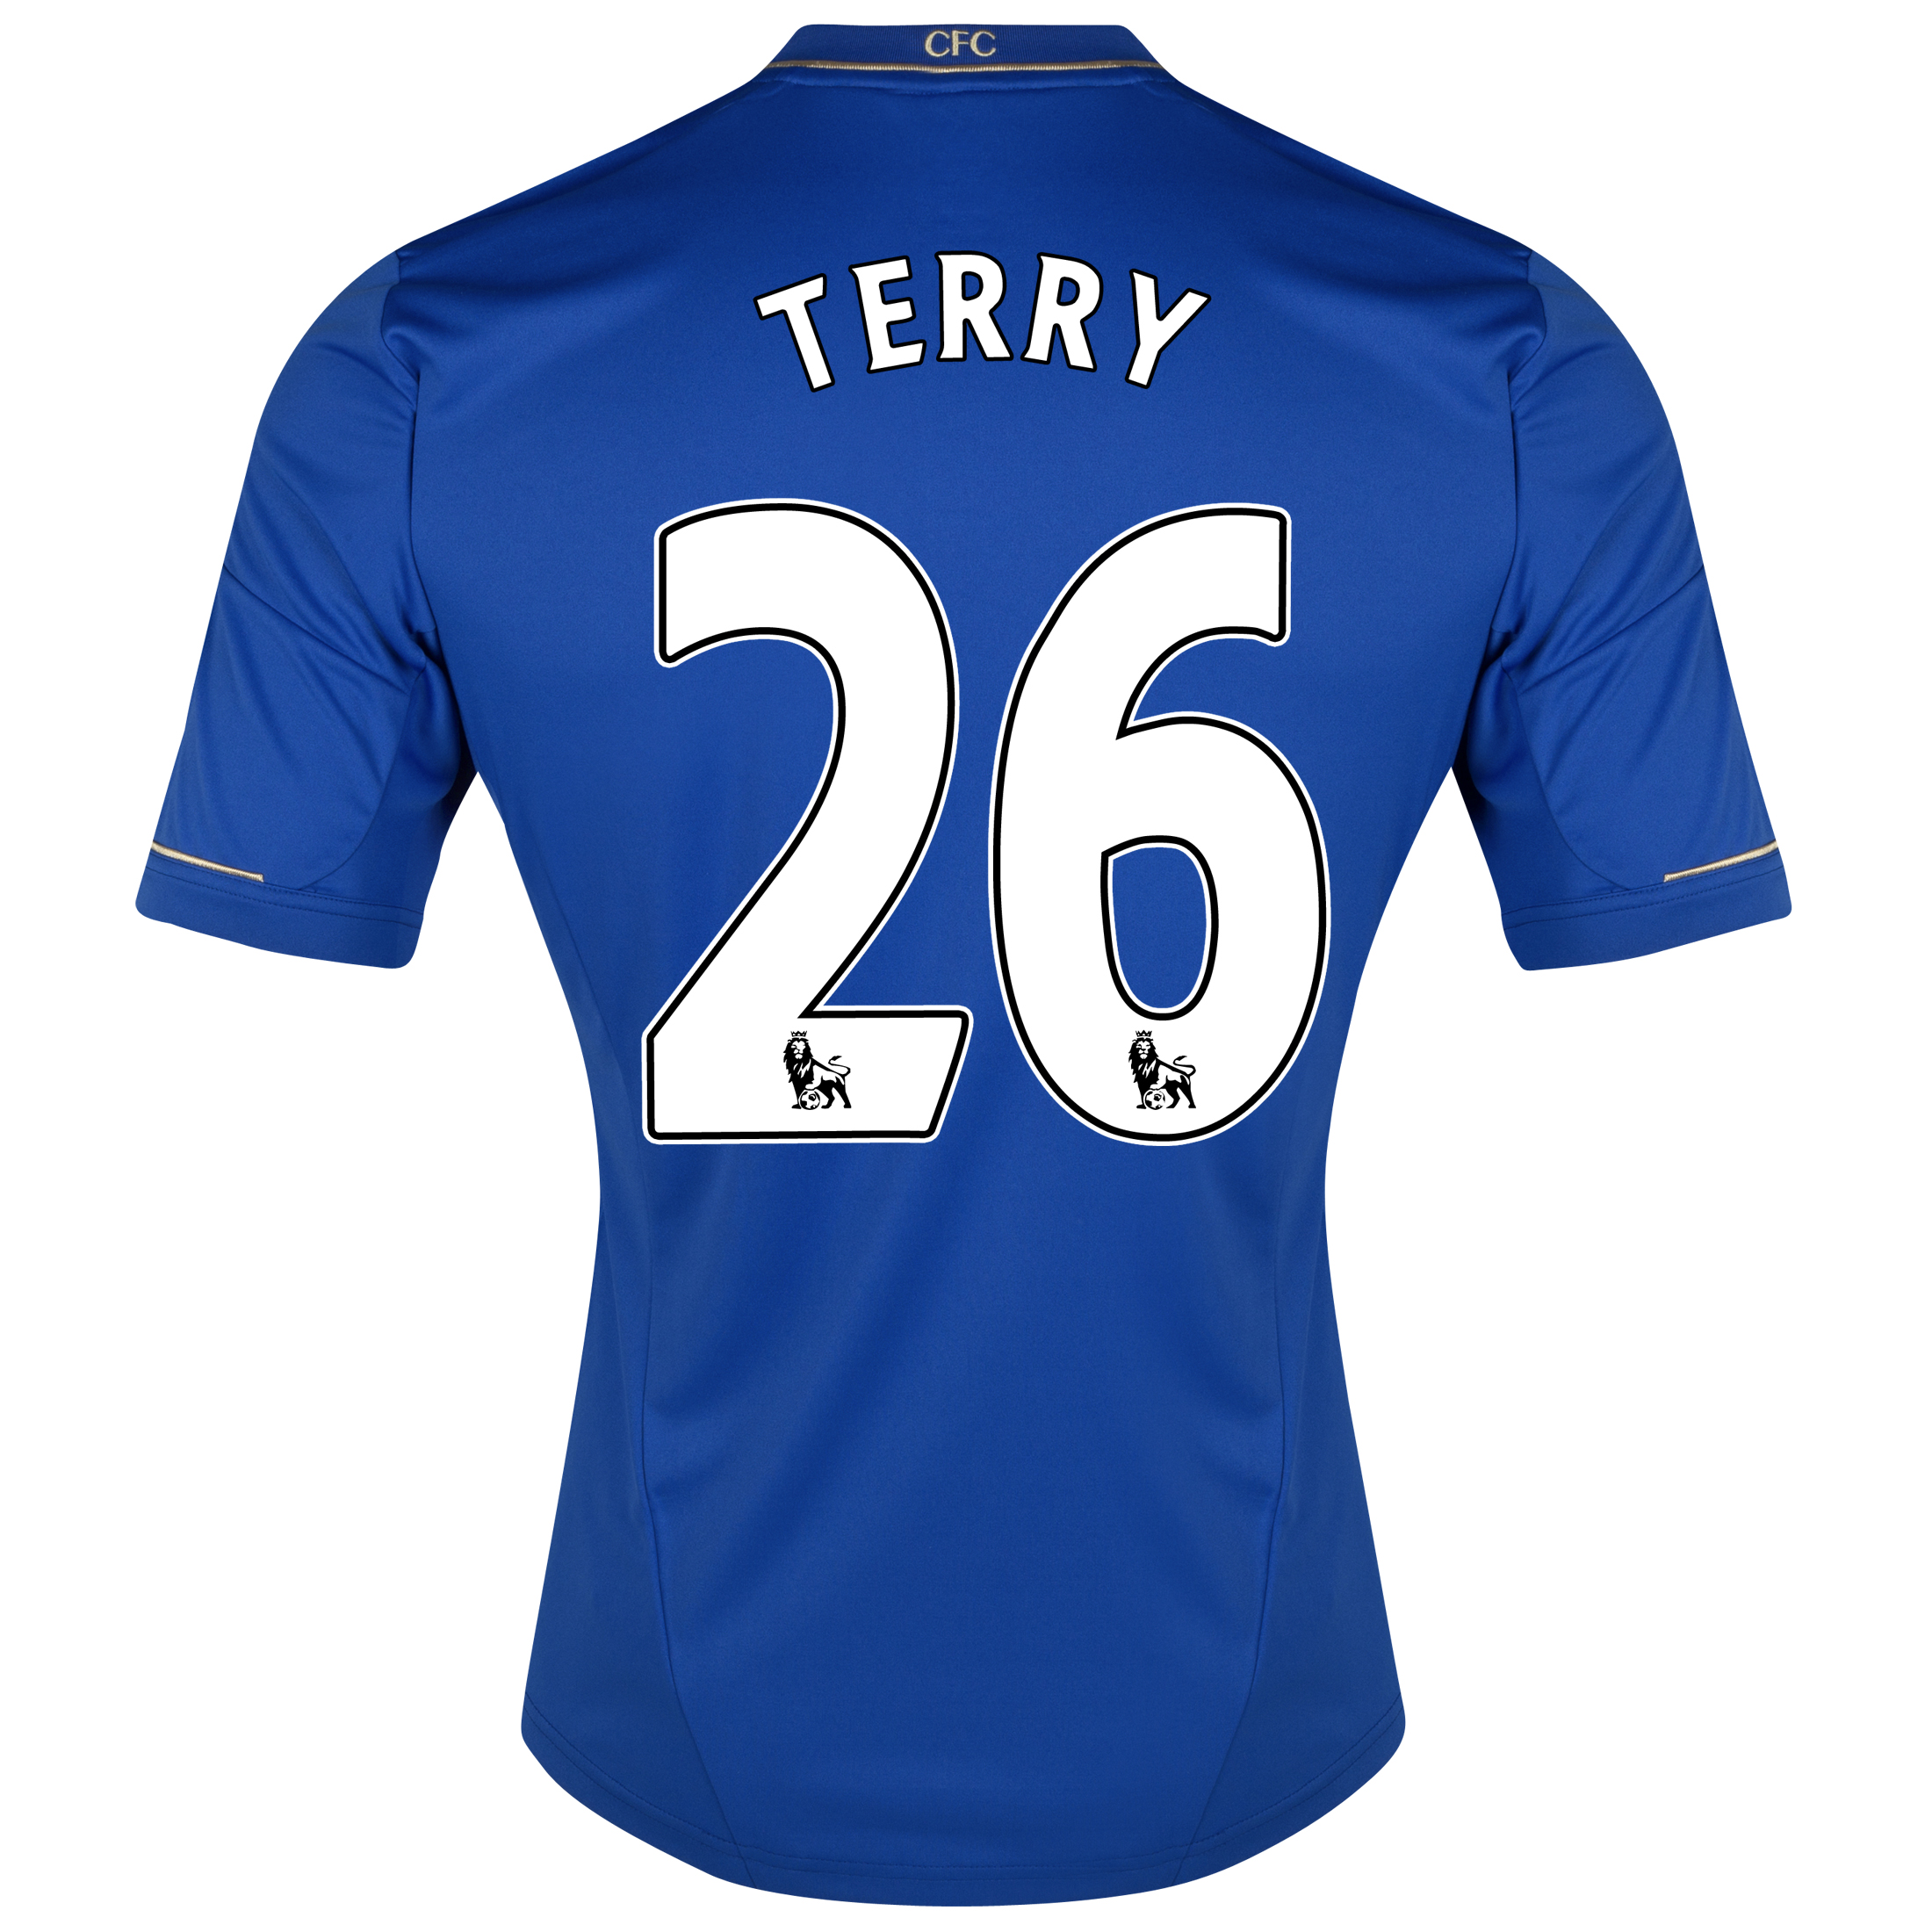 Chelsea Home Shirt 2012/13 with Terry 26 printing